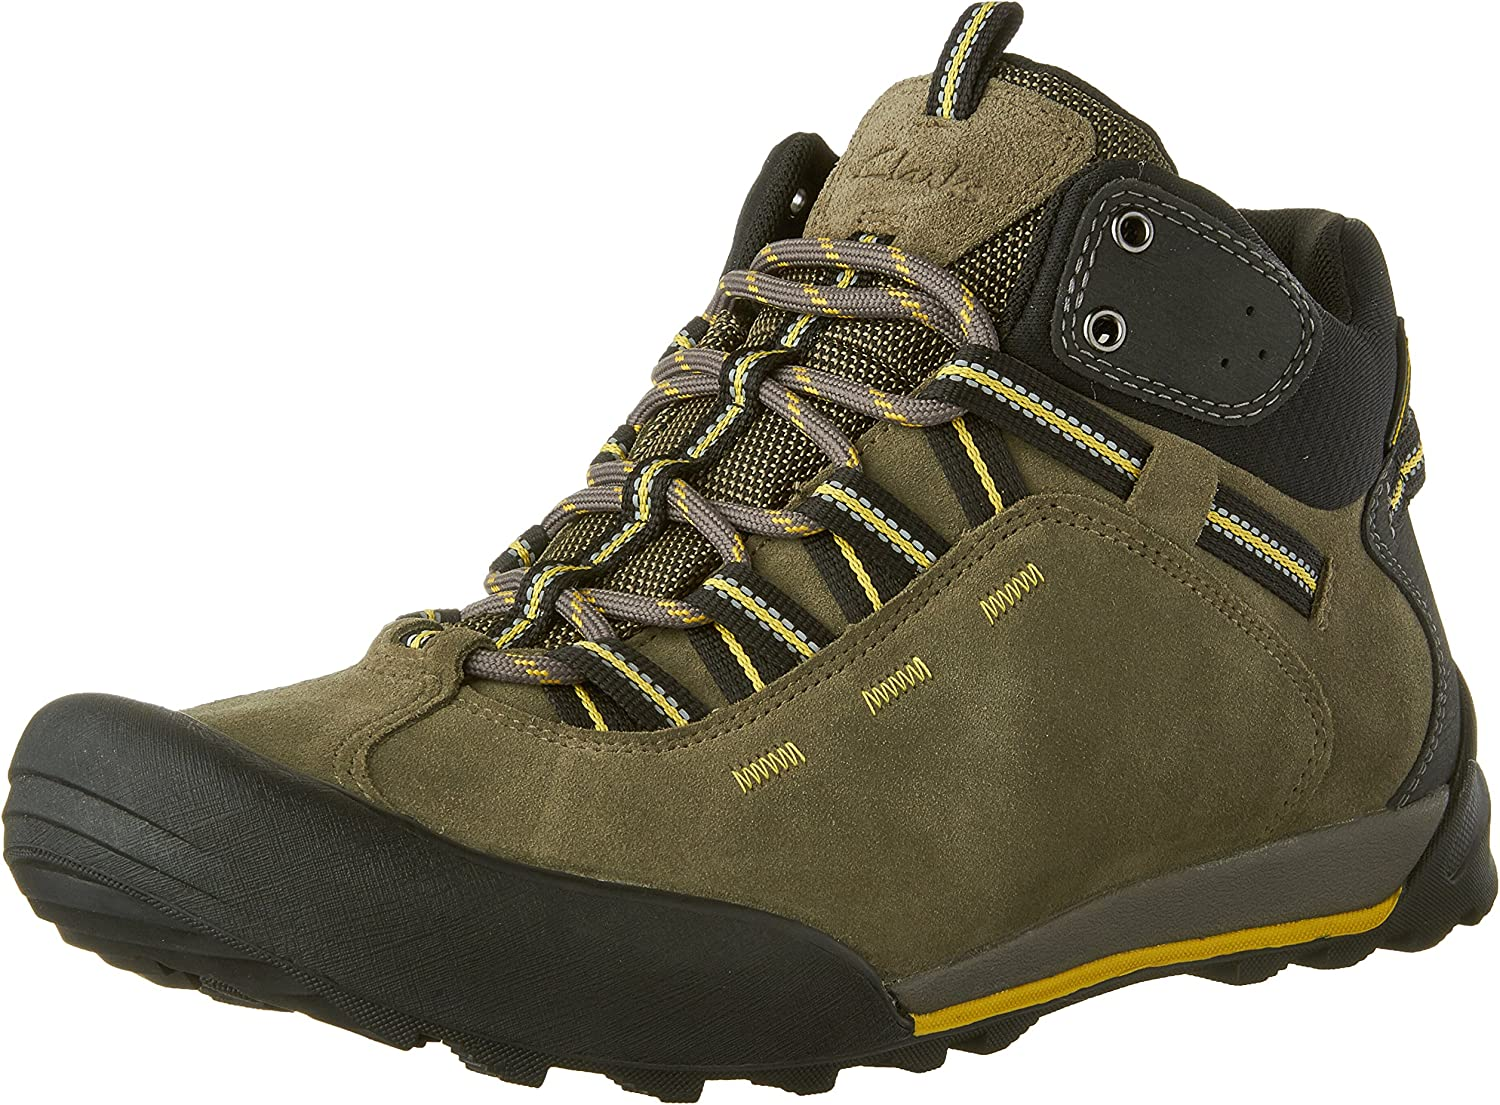 CLARKS Men's Outlay Roam Hiking Boot